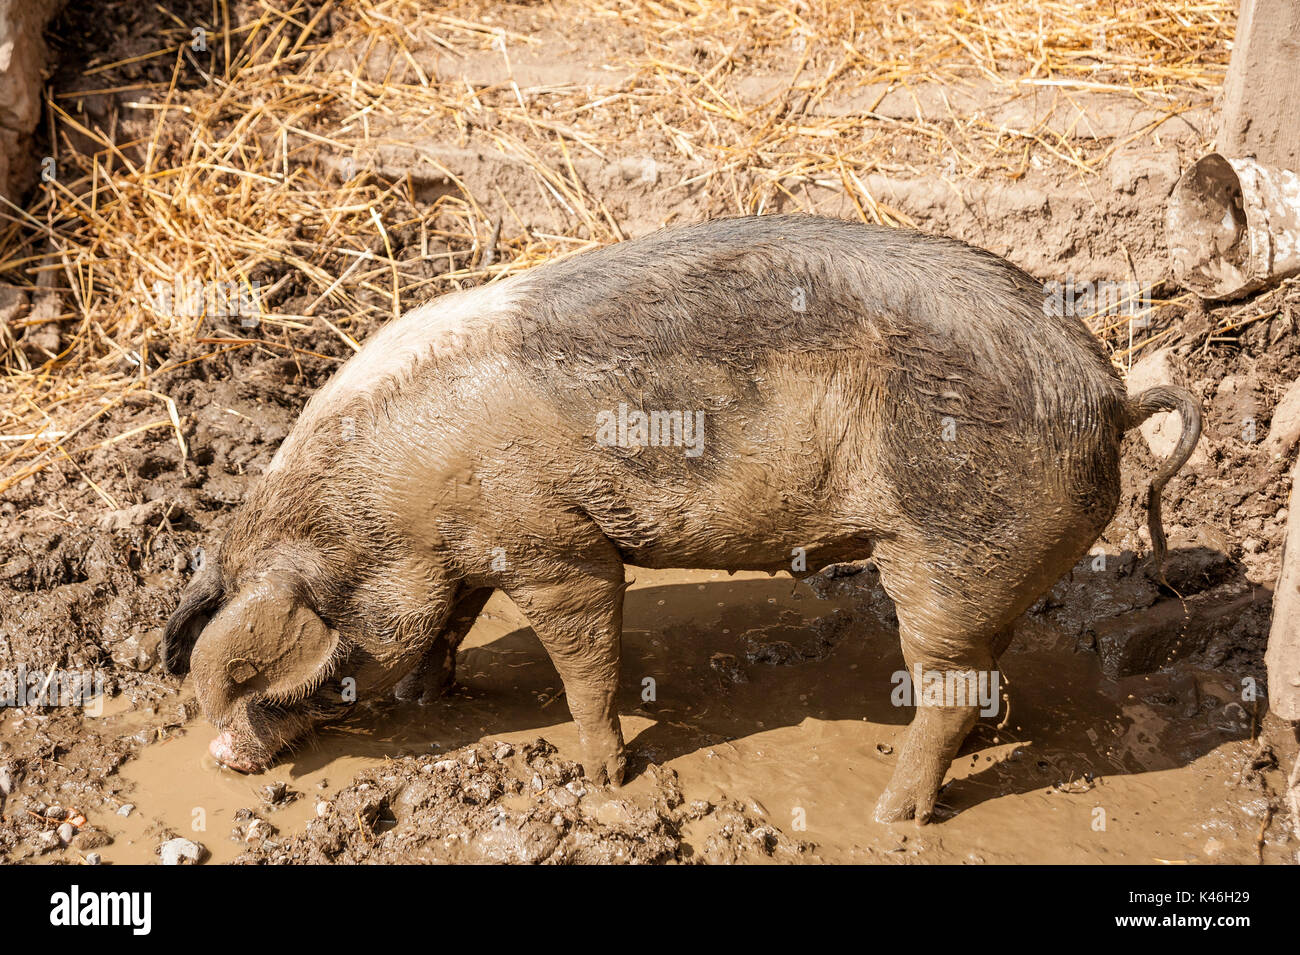 Dirty Pig - species-appropriate husbandry - Stock Image